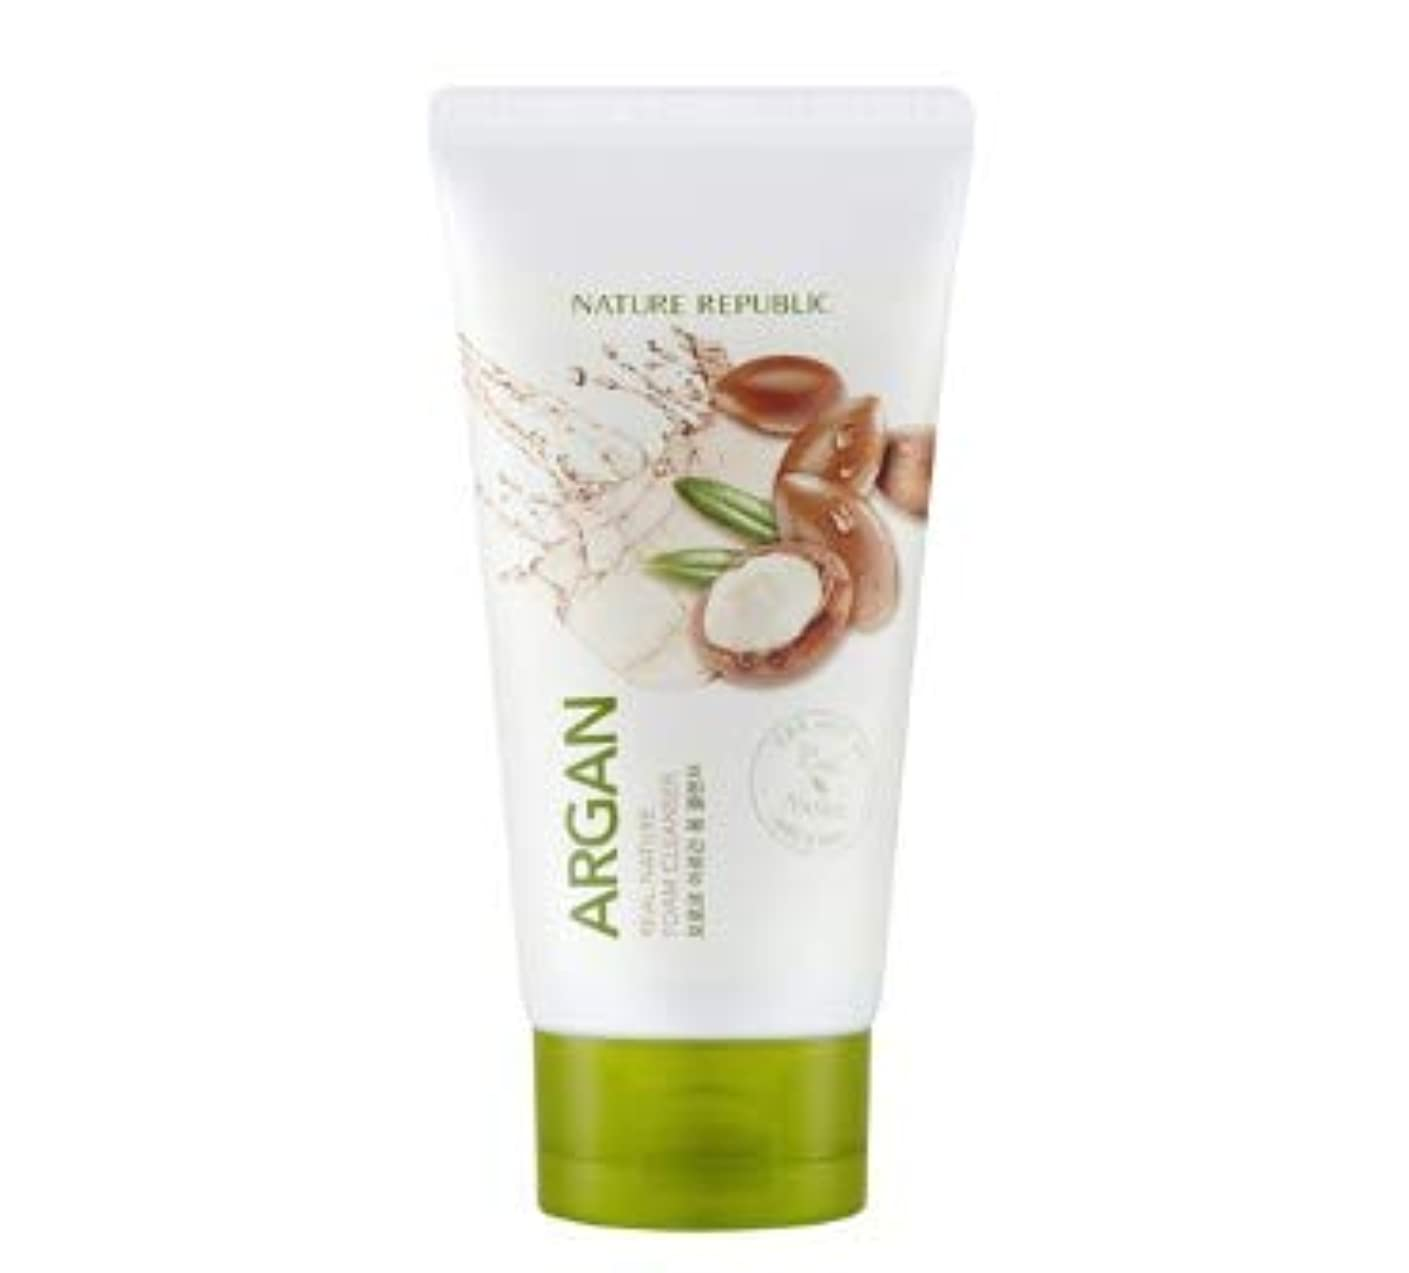 NATURE REPUBLIC Real Nature Argan Foam Cleanser 150ml [並行輸入品]